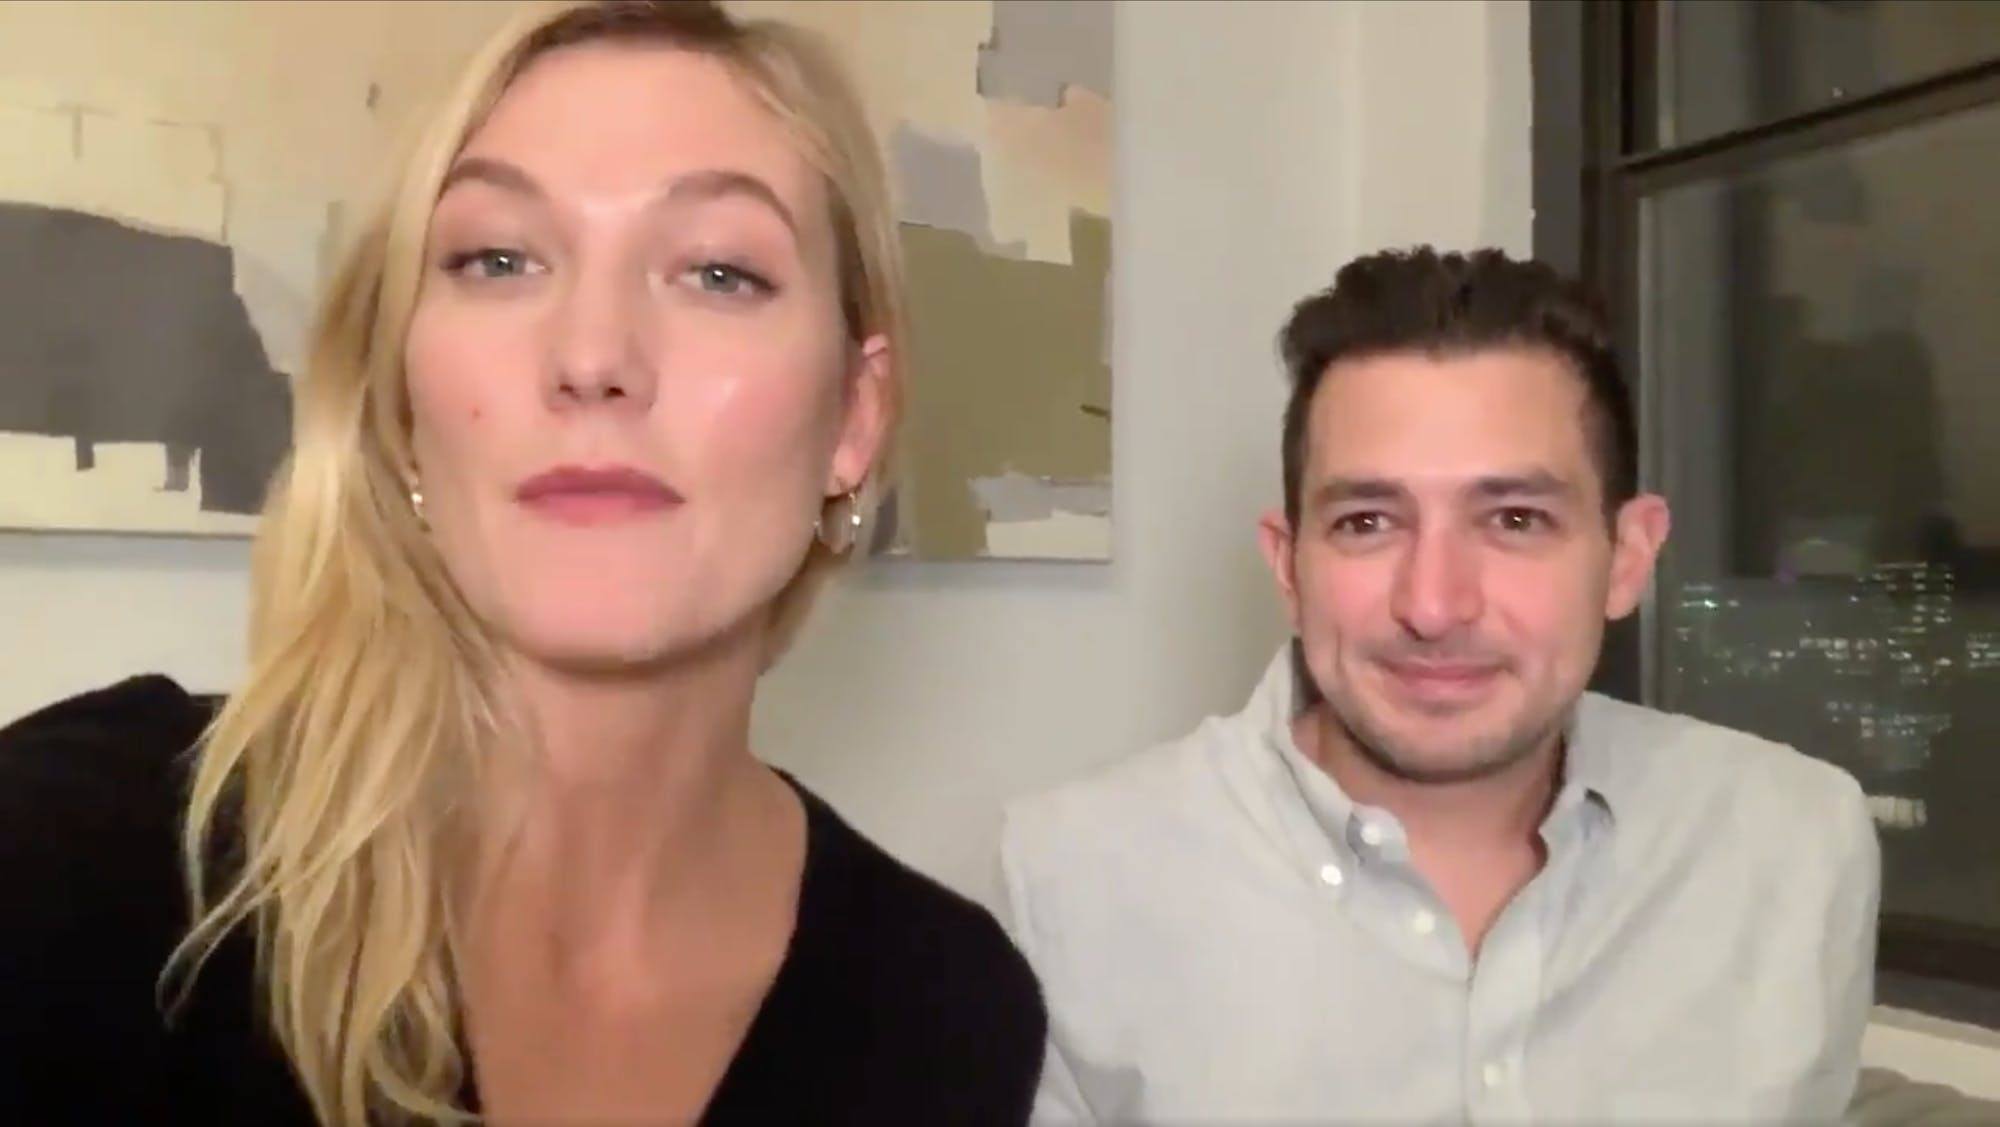 Avi Flombaum and Karlie Kloss Share Advice on Learning To